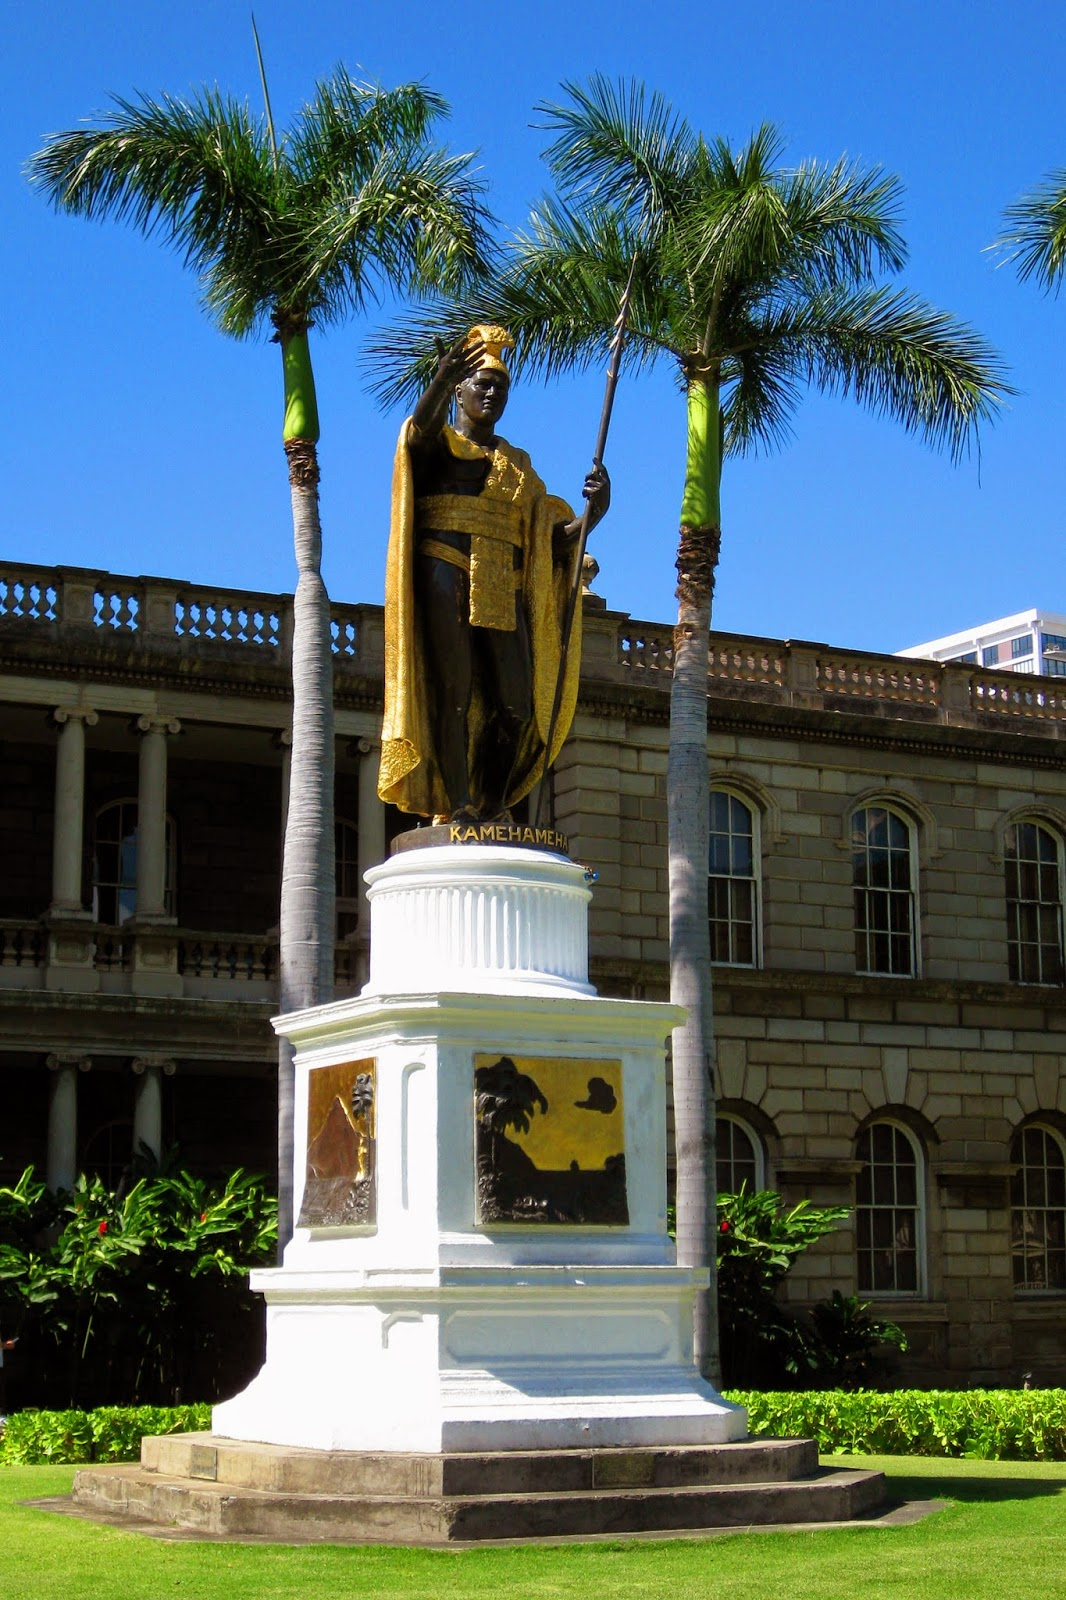 Statue of King Kamehameha in front of Aliiolani Hale (home to the Hawaii State Supreme Court)